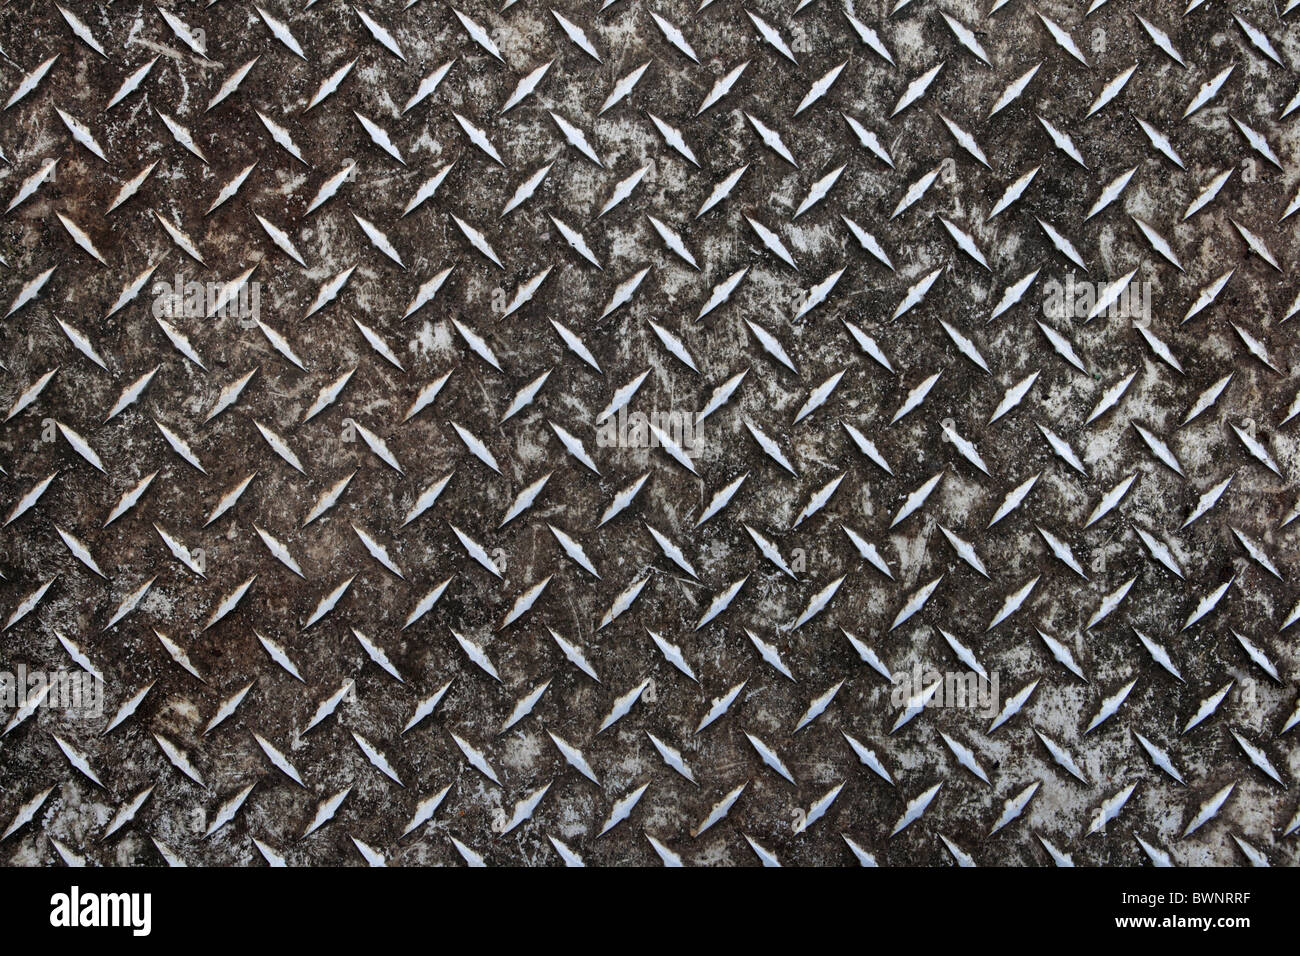 dirty worn old aluminum diamond plate non-skid surface background - Stock Image